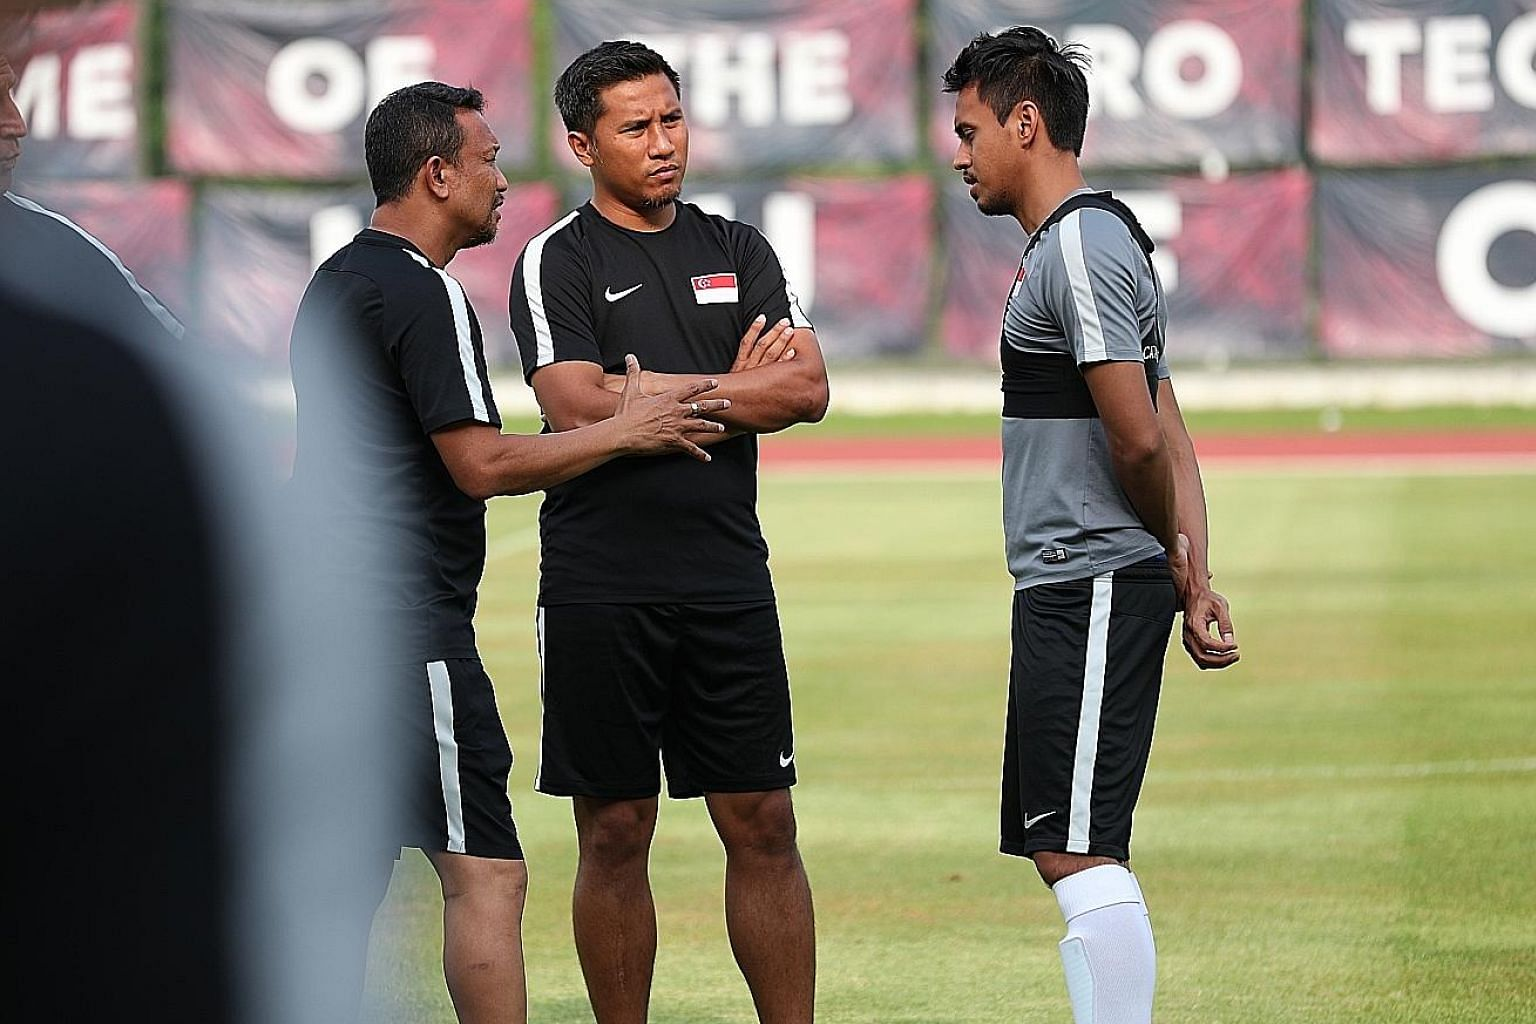 Singapore national football team head coach Fandi Ahmad and his player mentor Noh Alam Shah (centre) give midfielder Shahdan Sulaiman some advice during a Lions training session at Bishan Stadium.